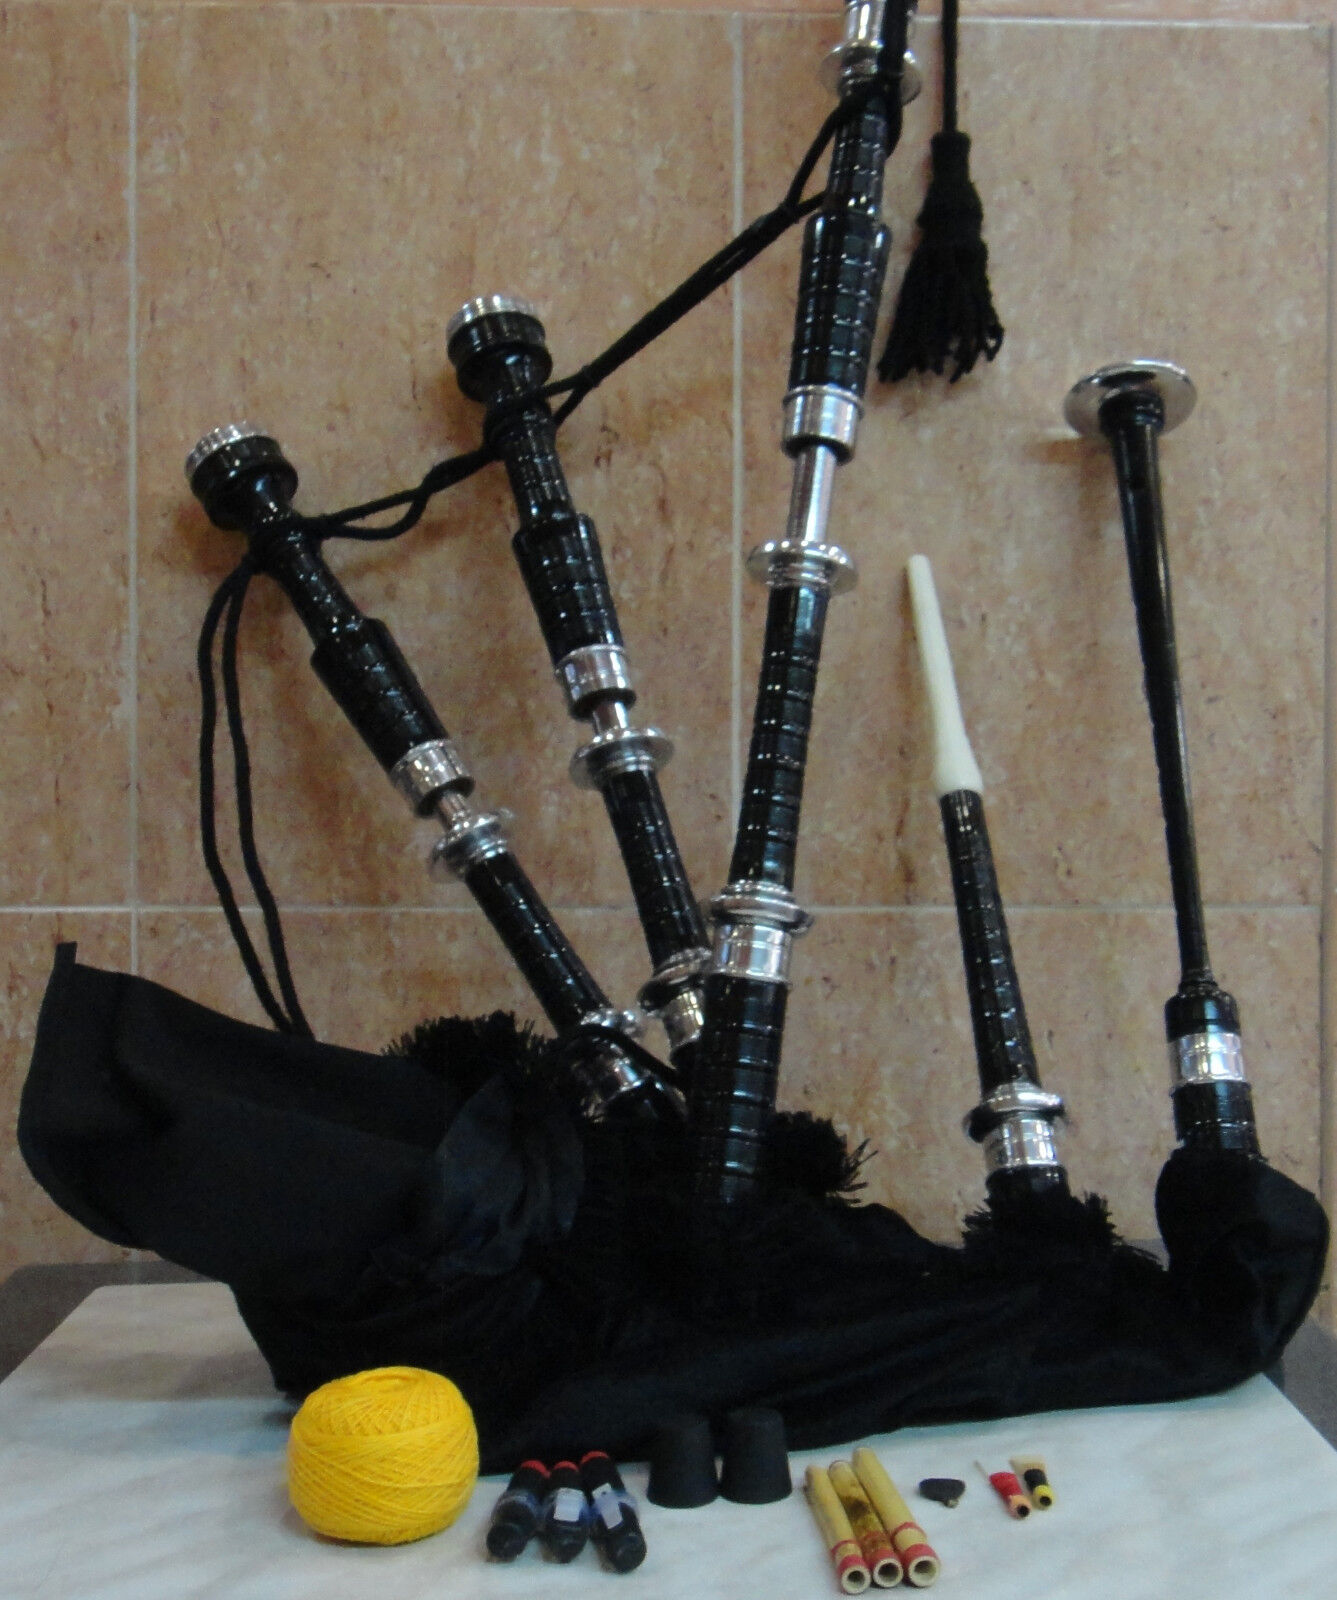 Highland Bagpipes for Beginner with practice chanter tutor book